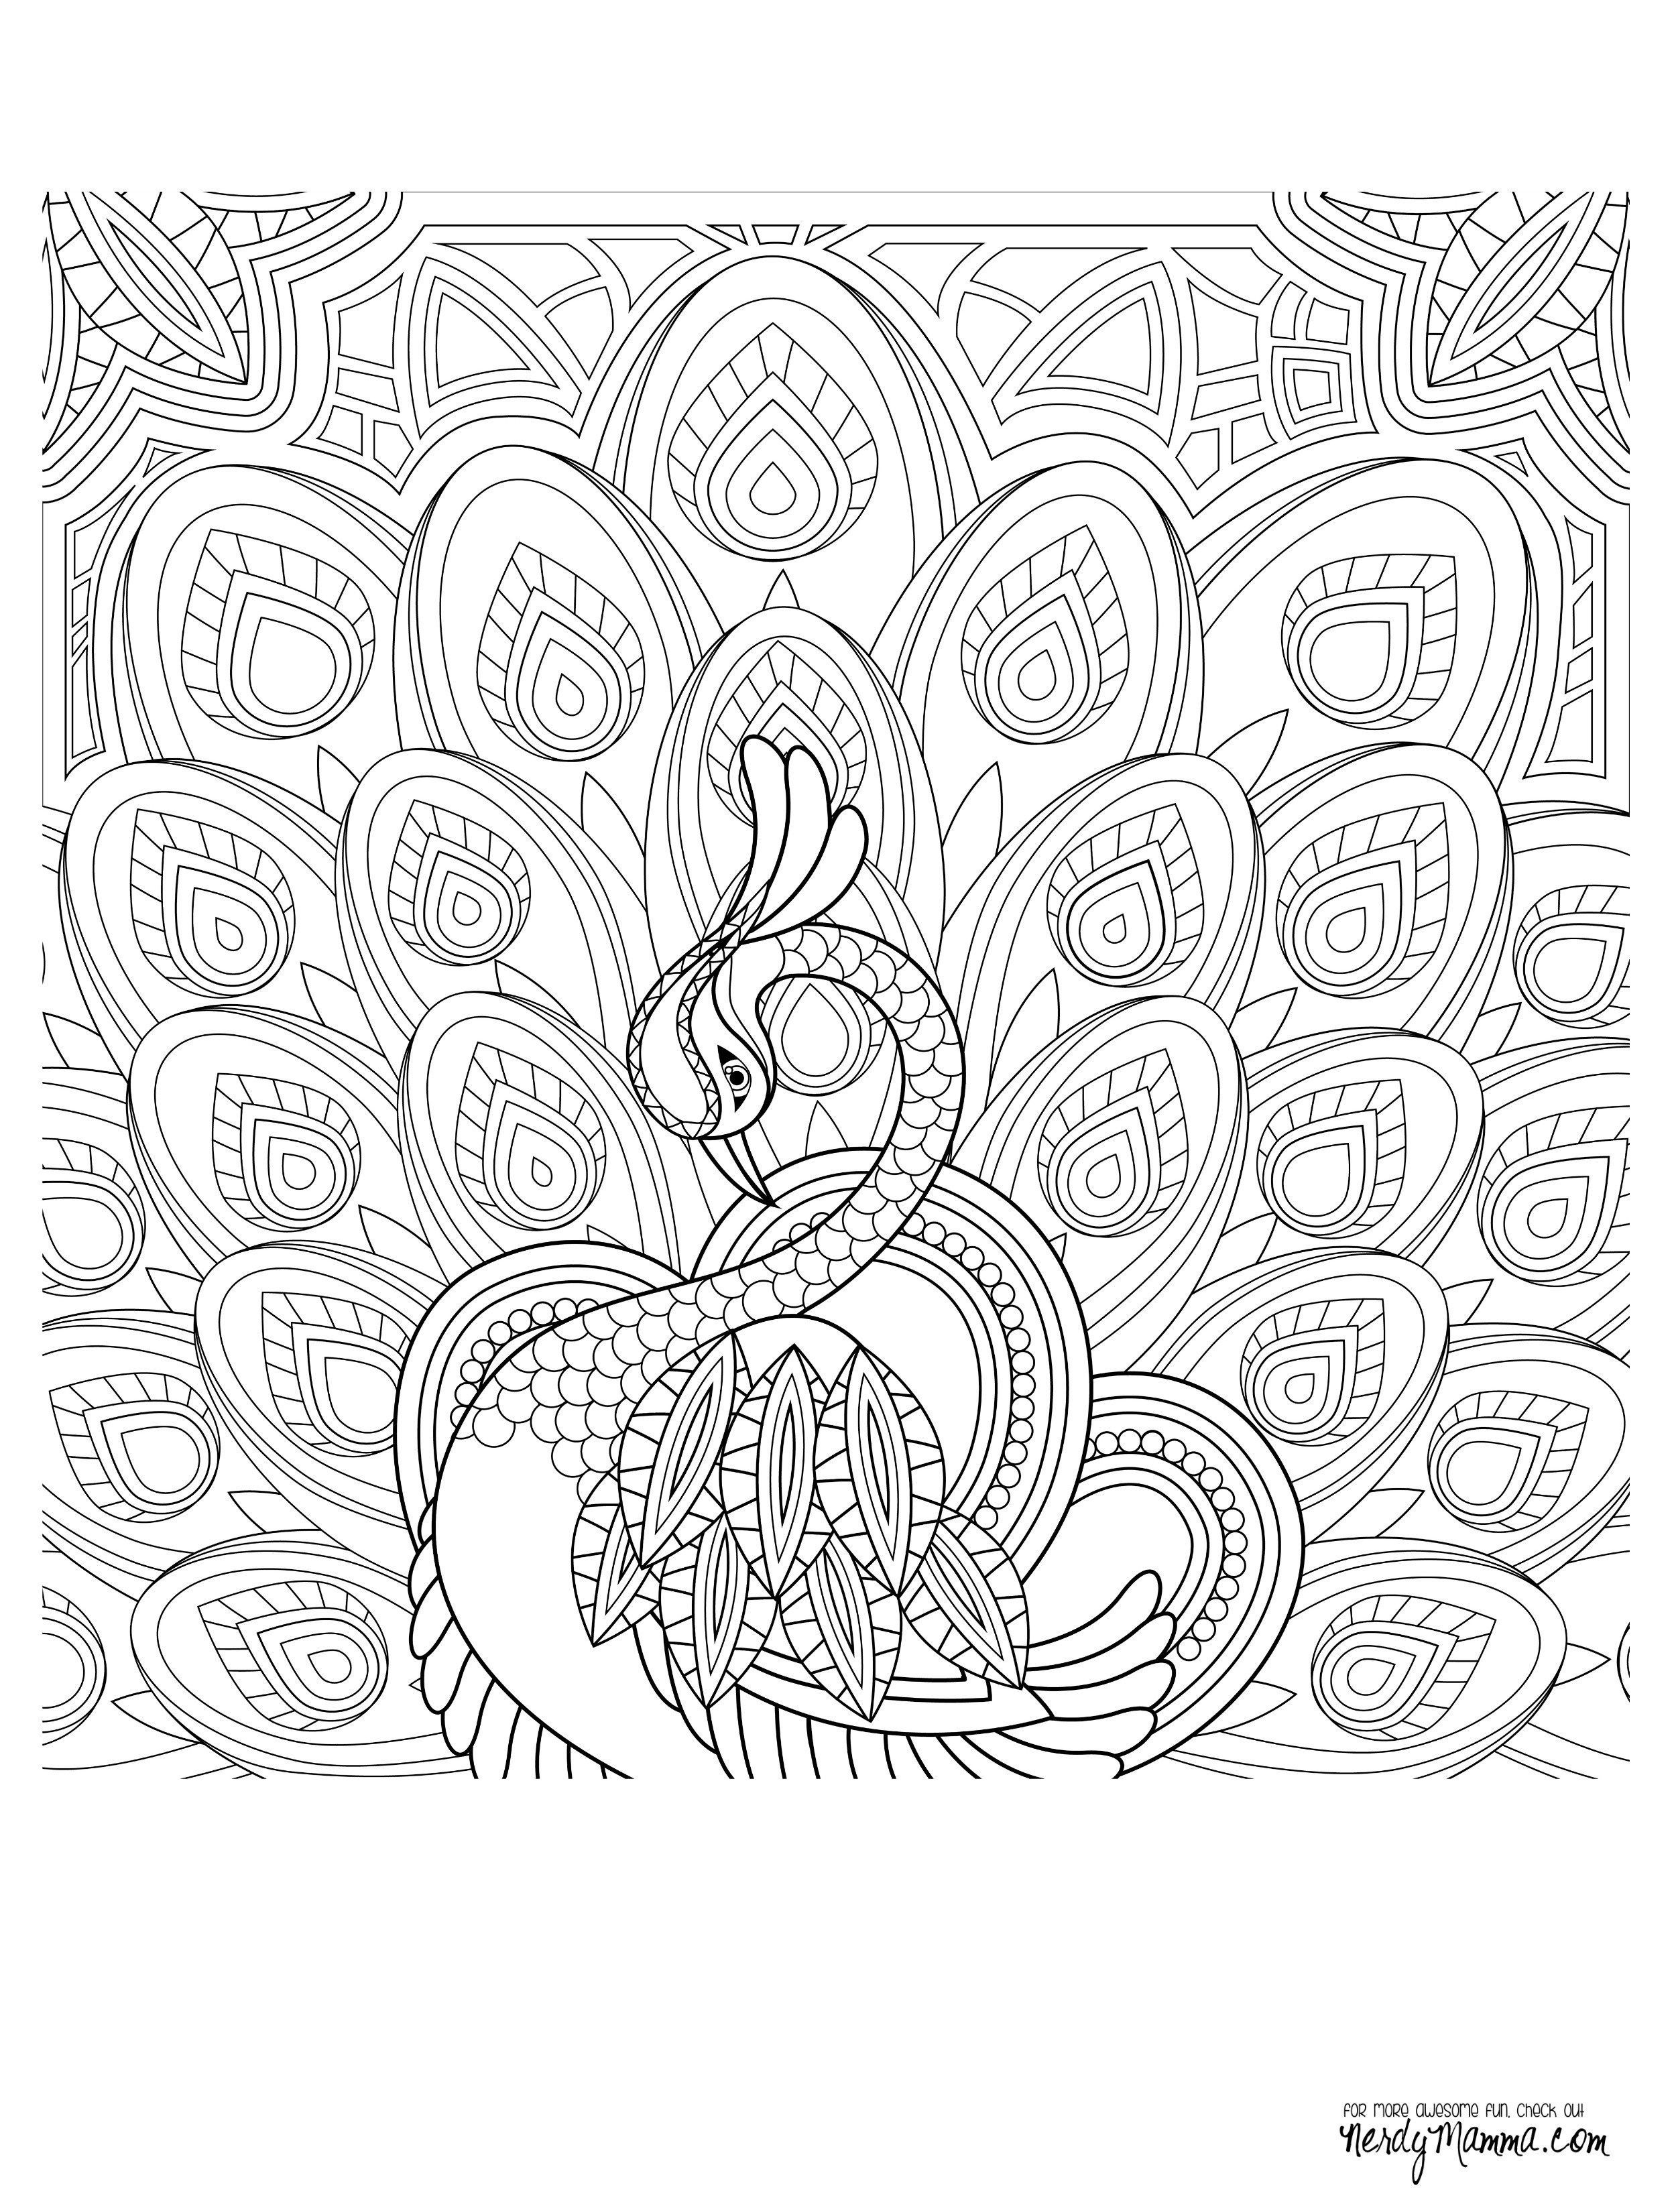 color coloring pages Download-Mal Coloring Pages Fresh Crayola Pages 0d – Voterapp 10-m